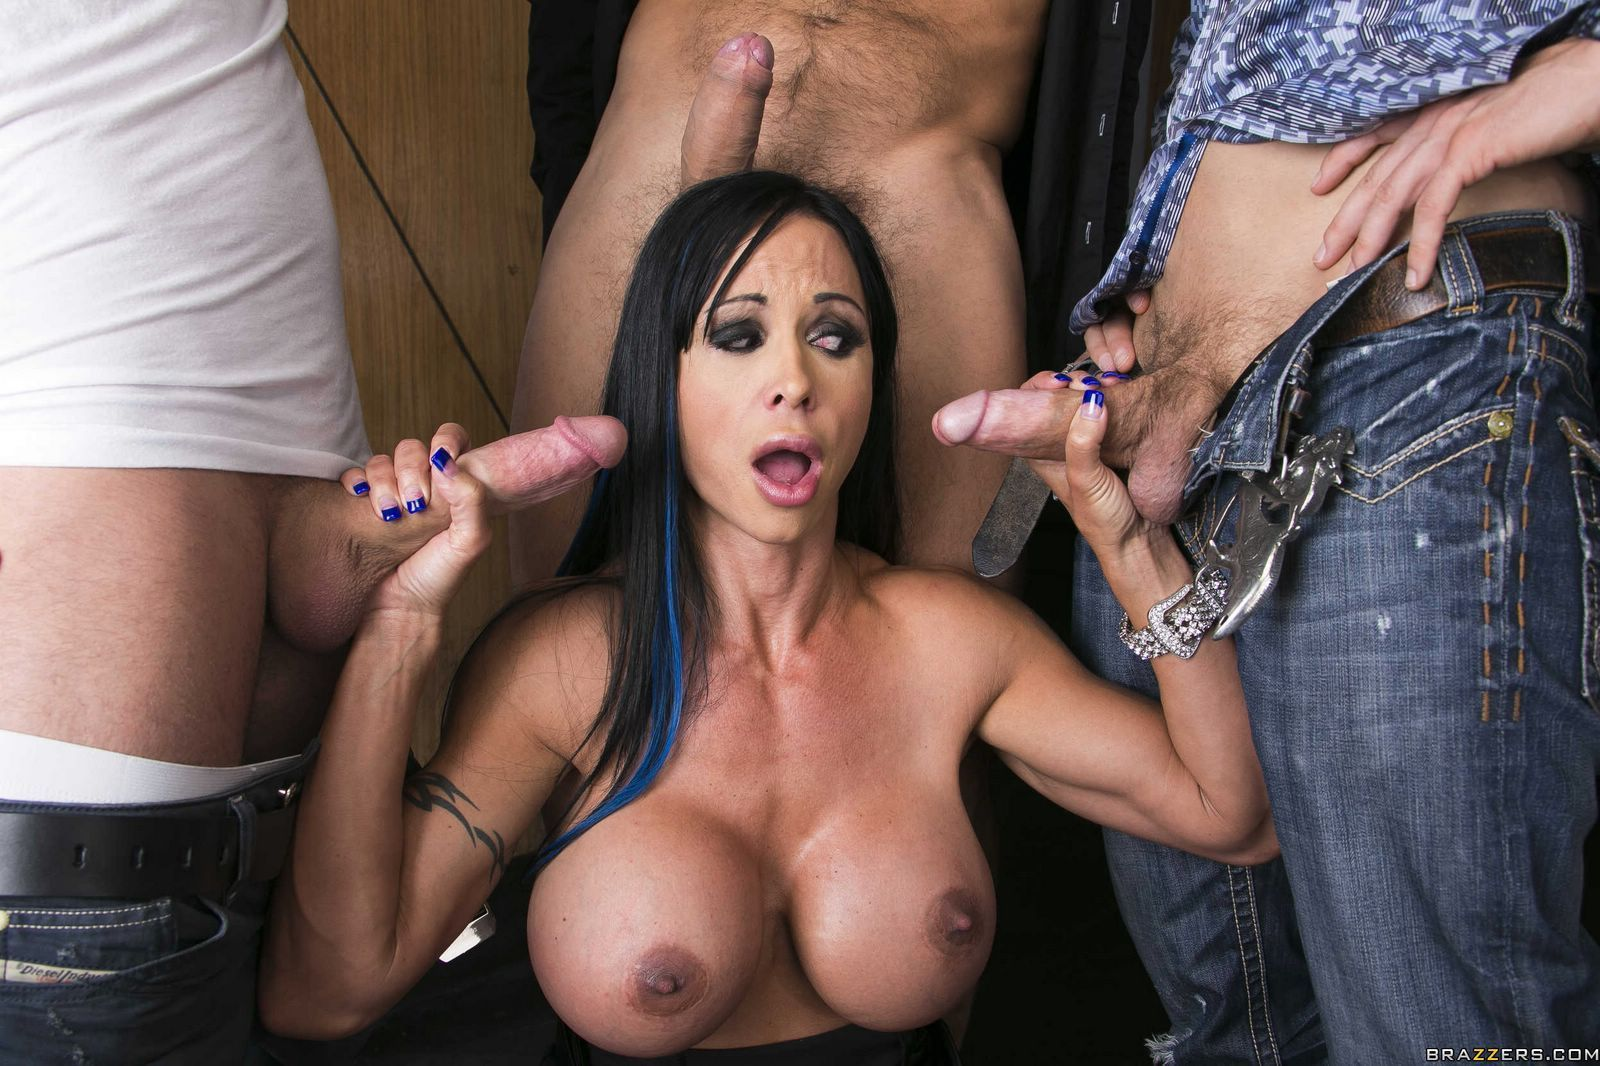 3 Huge Cocks amateur wife sucks huge cock robbery. sex hq pictures free